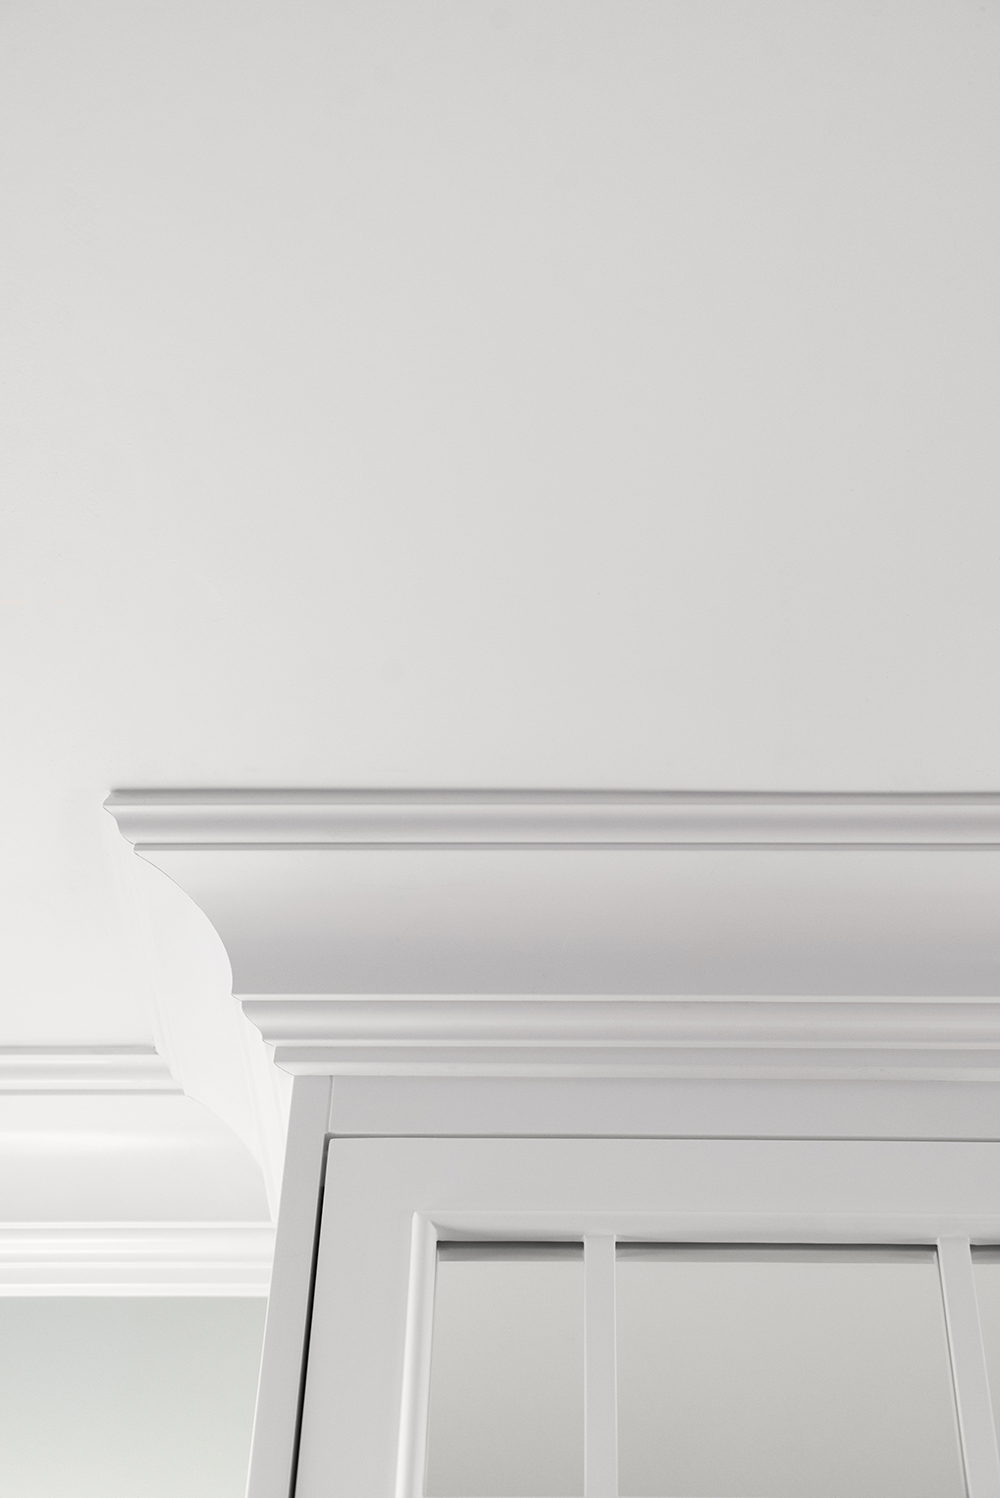 How to Select Millwork Profiles + The Trim I Chose